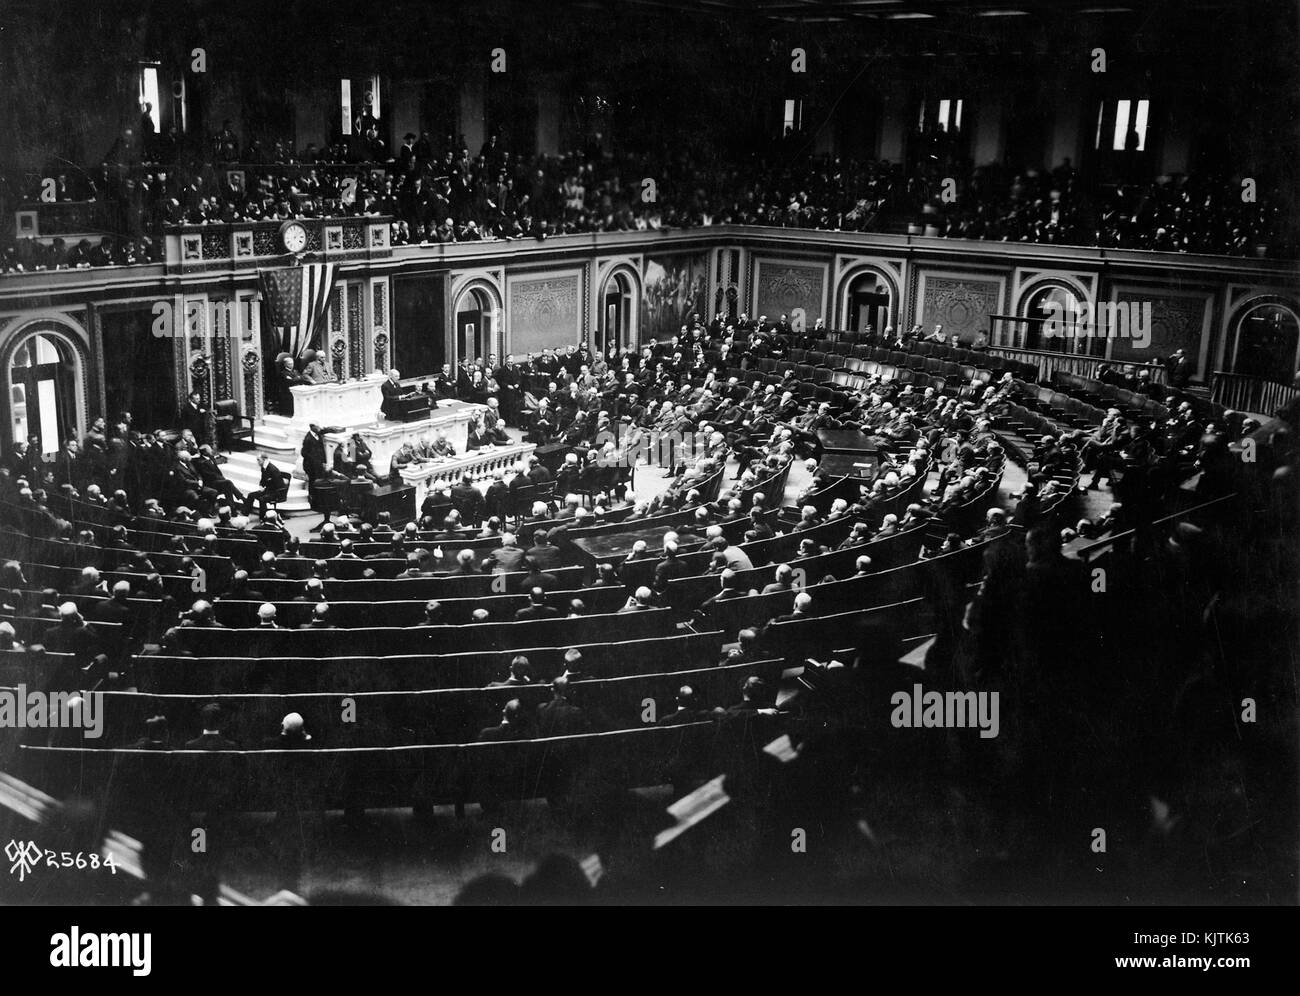 US PRESIDENT WILSON reads the terms of the Armistice to Congress on 1 January 1918 - Stock Image